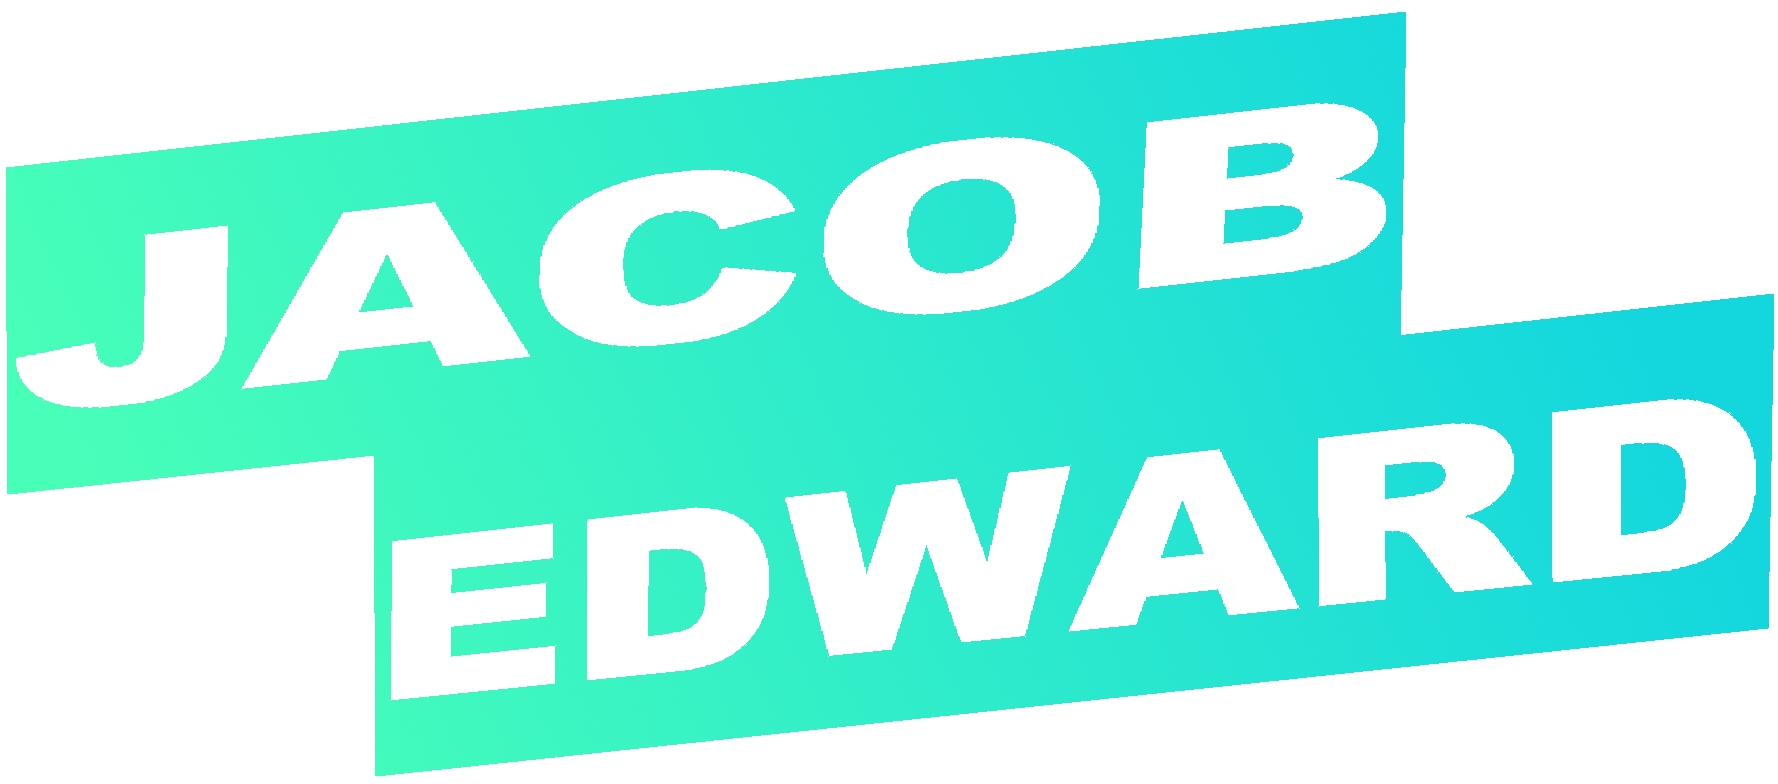 Jacob Edward